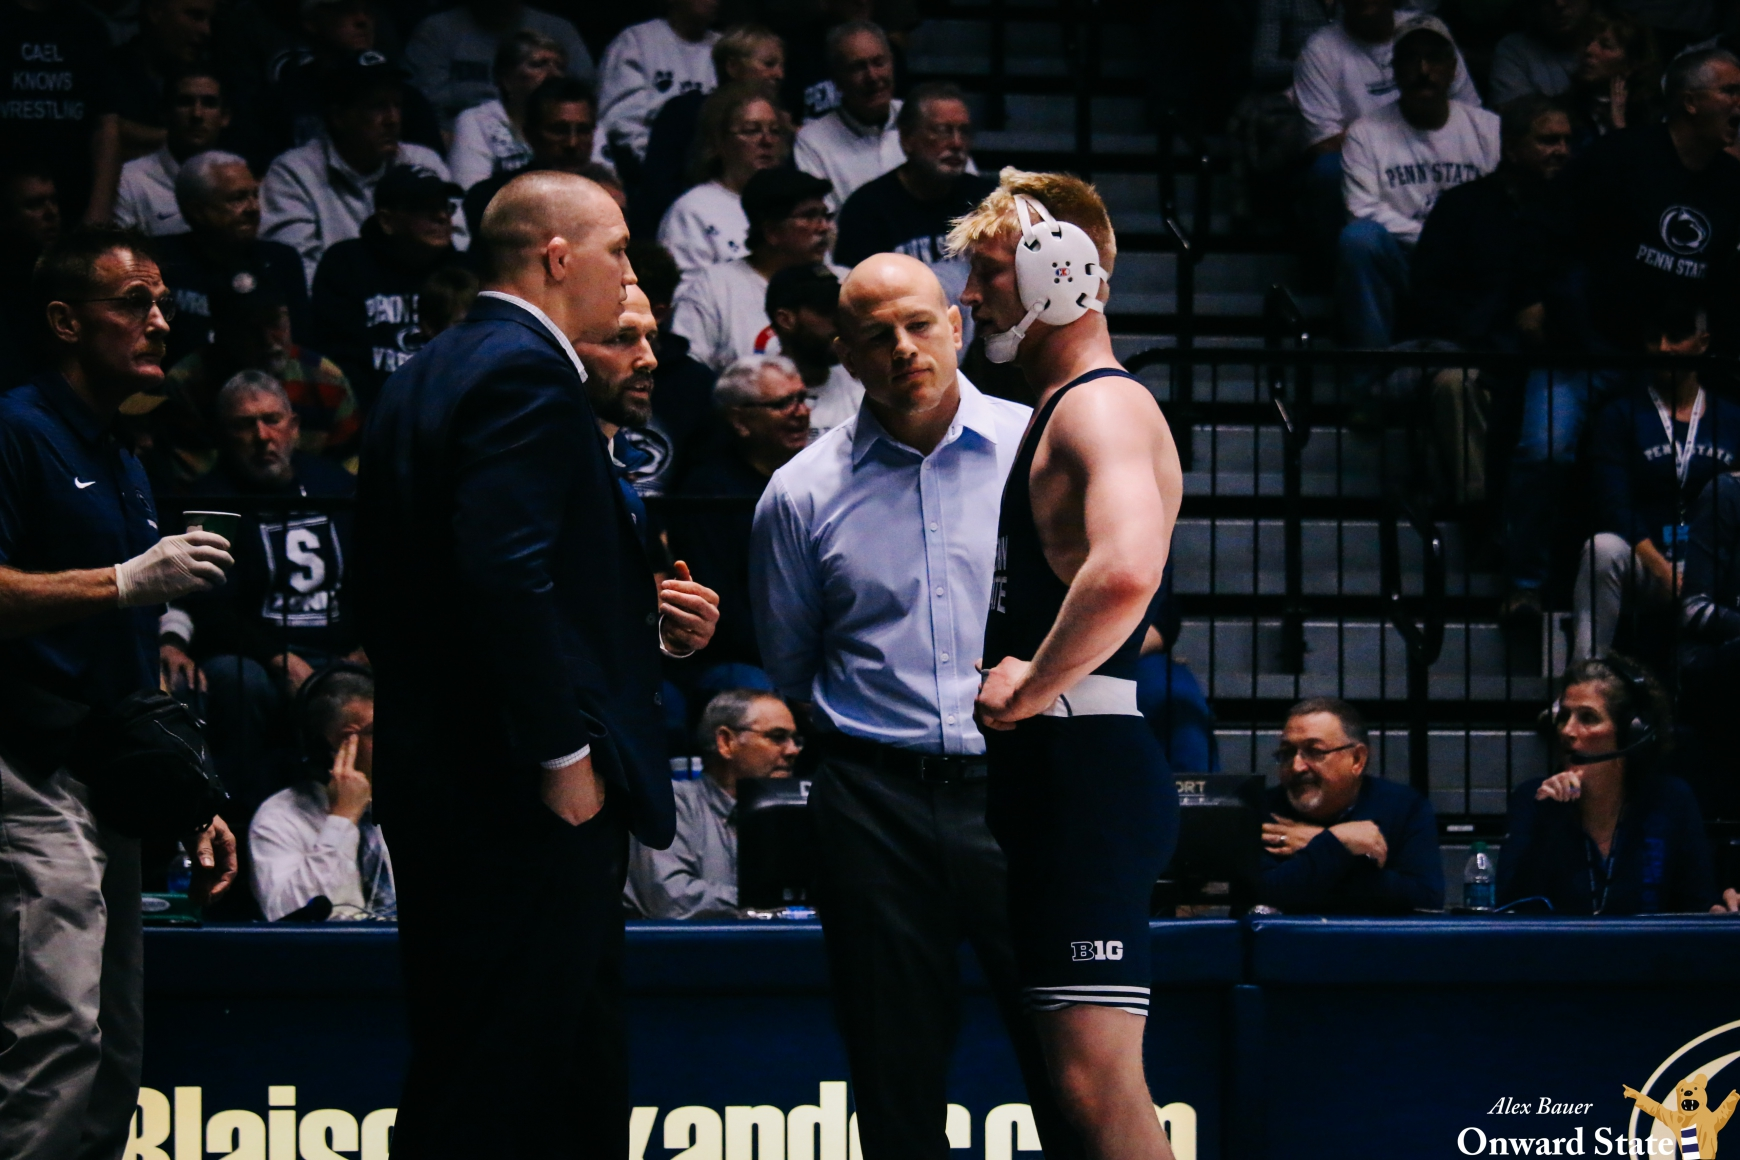 Gophers lose first game of Big Ten tournament to Penn State